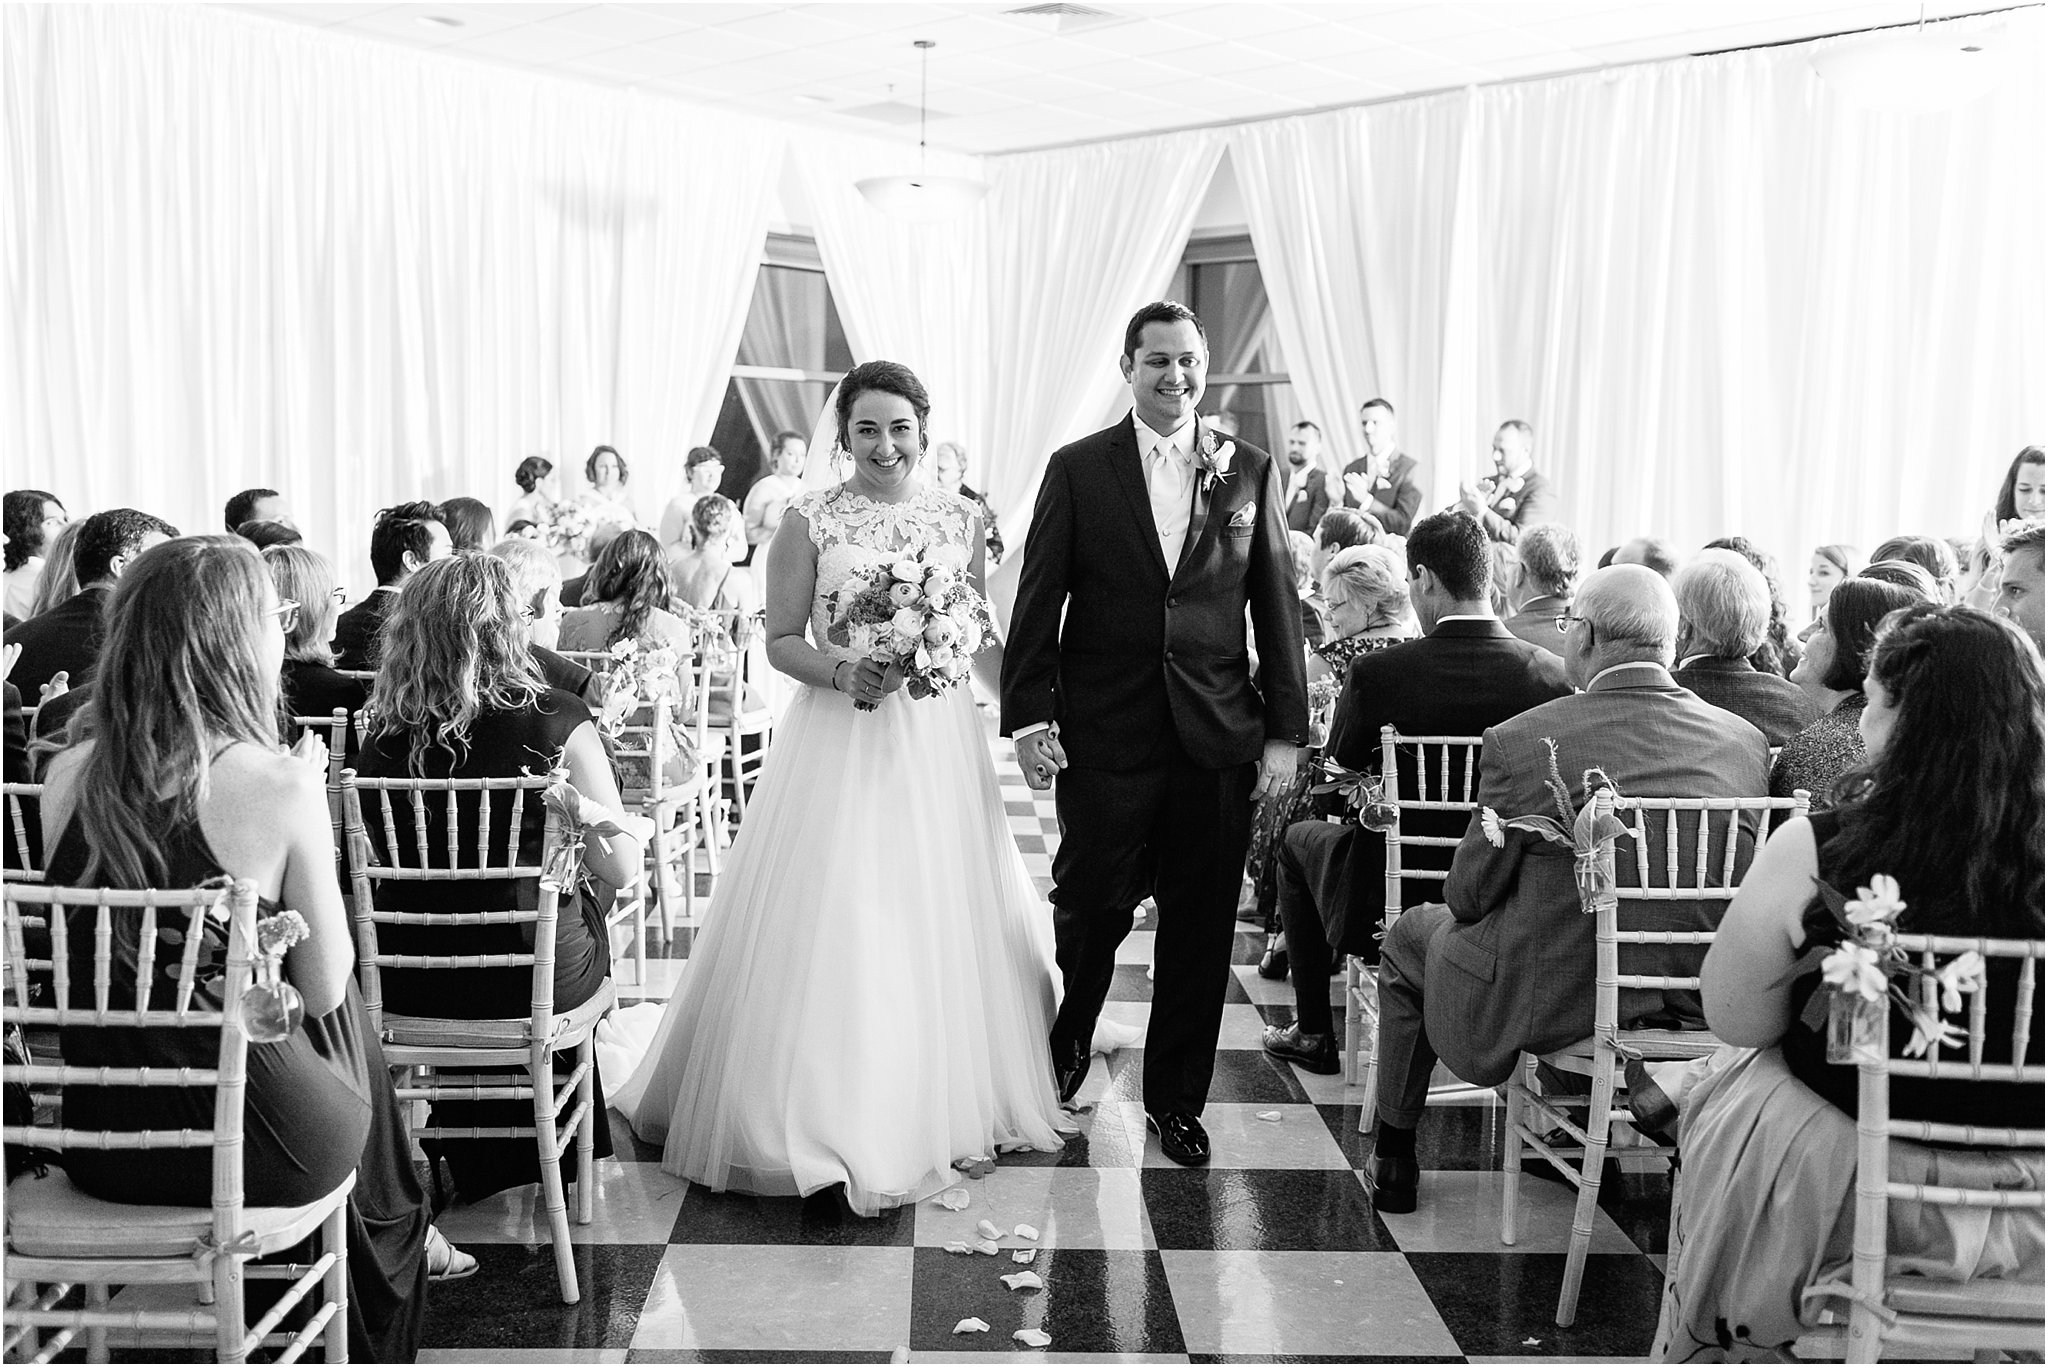 jessica_ryan_photography_virginia_wedding_photographer_wedding_hurricane_norfolk_botanical_gardens_hurricane_matthew_wedding_3600